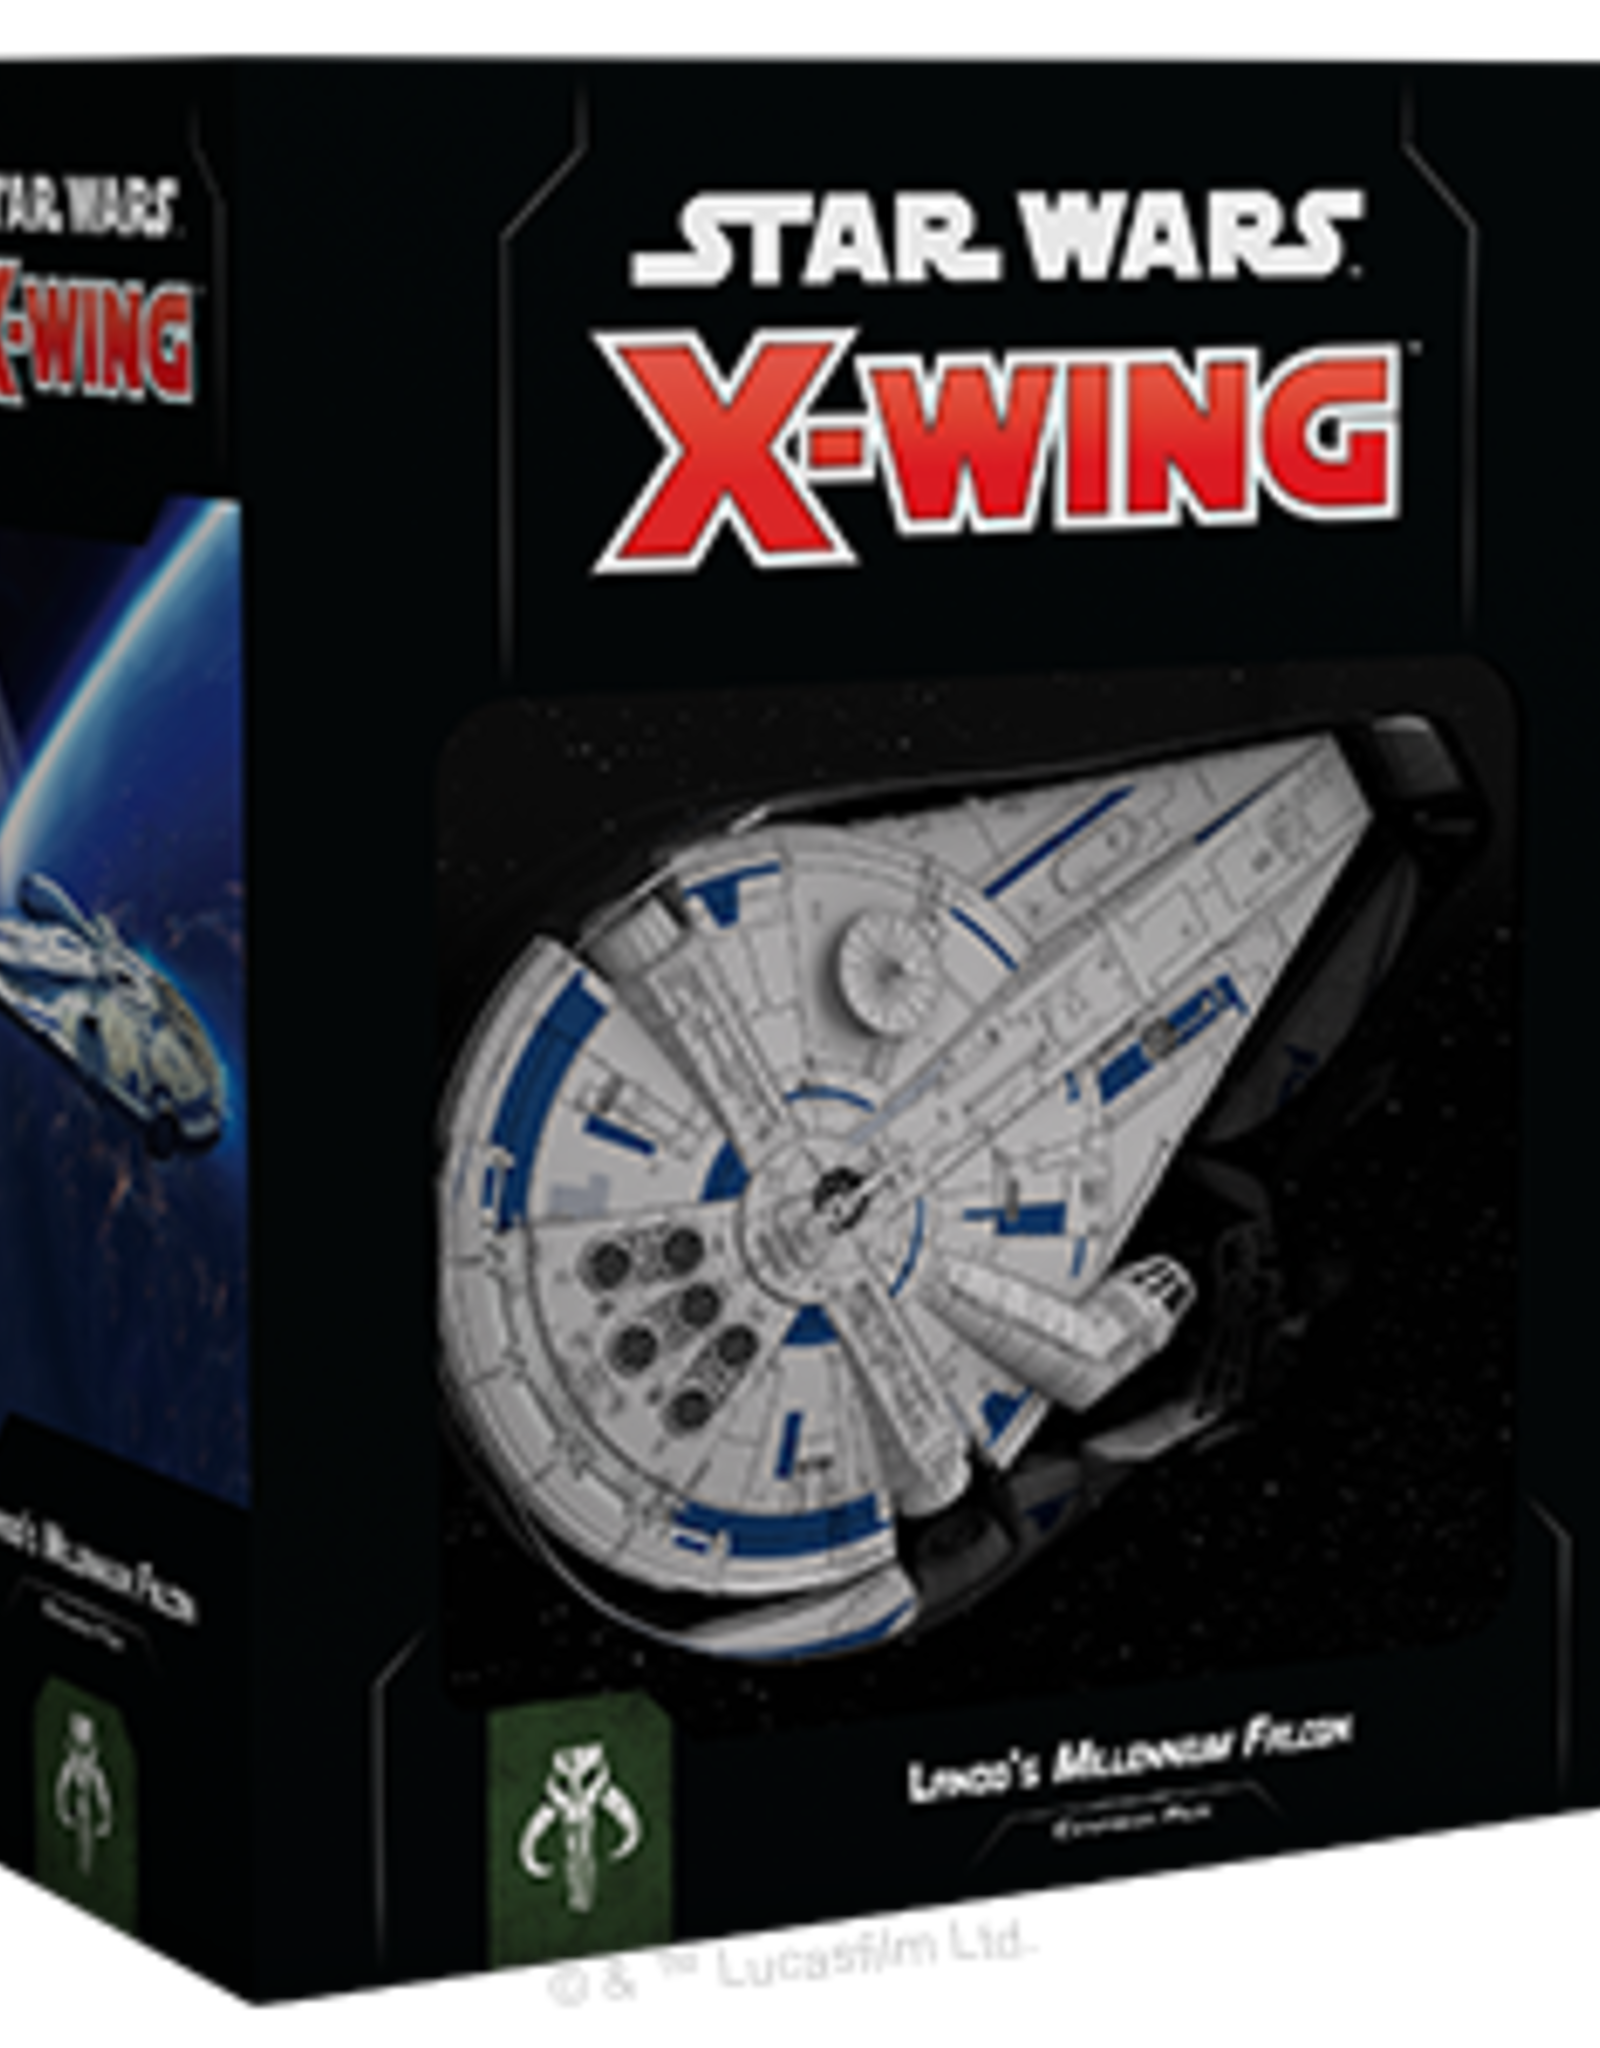 FFG Star Wars X-Wing 2.0: Lando's Millennium Falcon Expansion 2.0 Pack